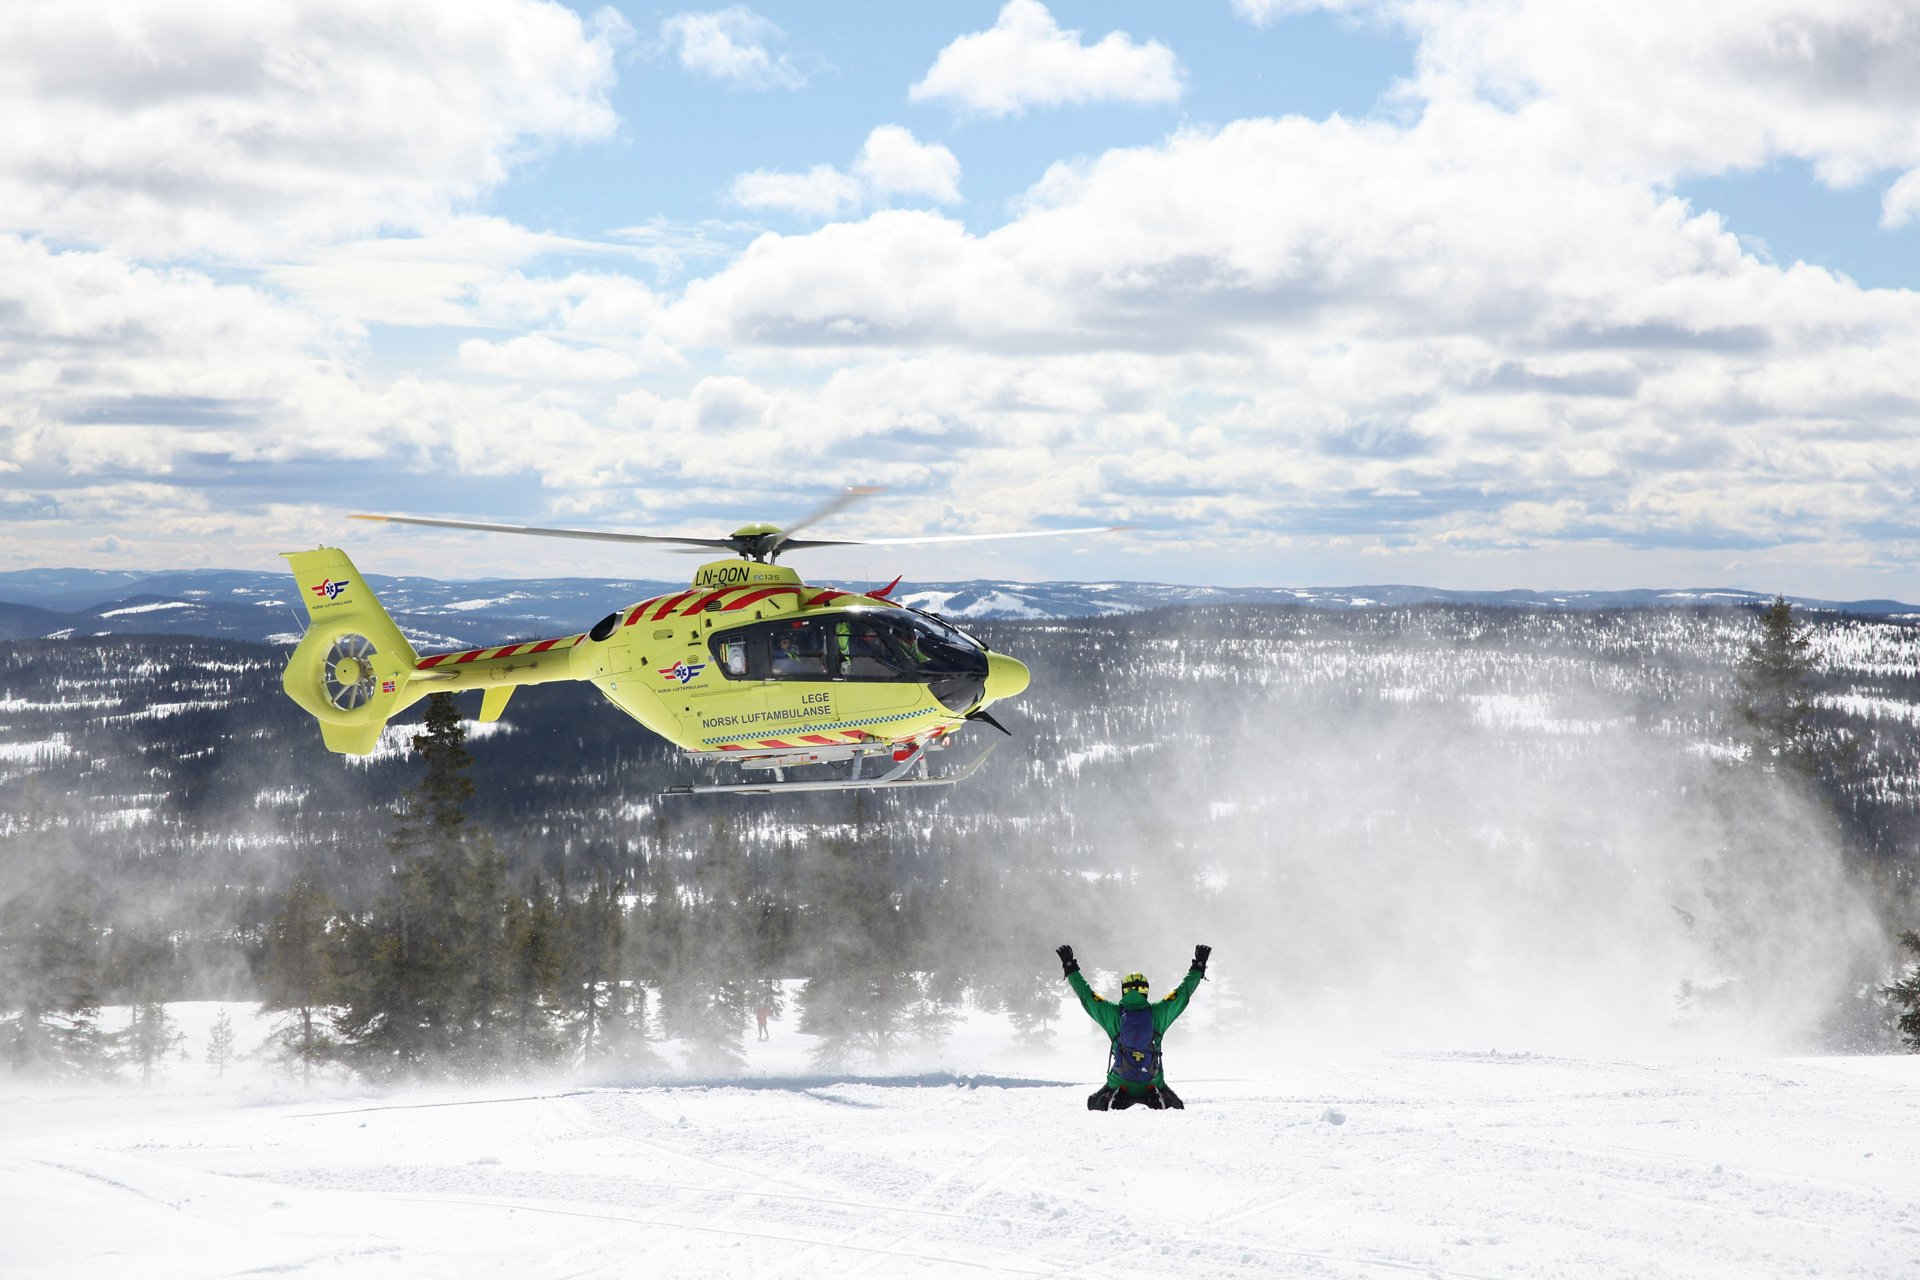 The H145 is ideally-suited for providing Helicopter Emergency Medical Services (HEMS) across Norway's challenging terrain